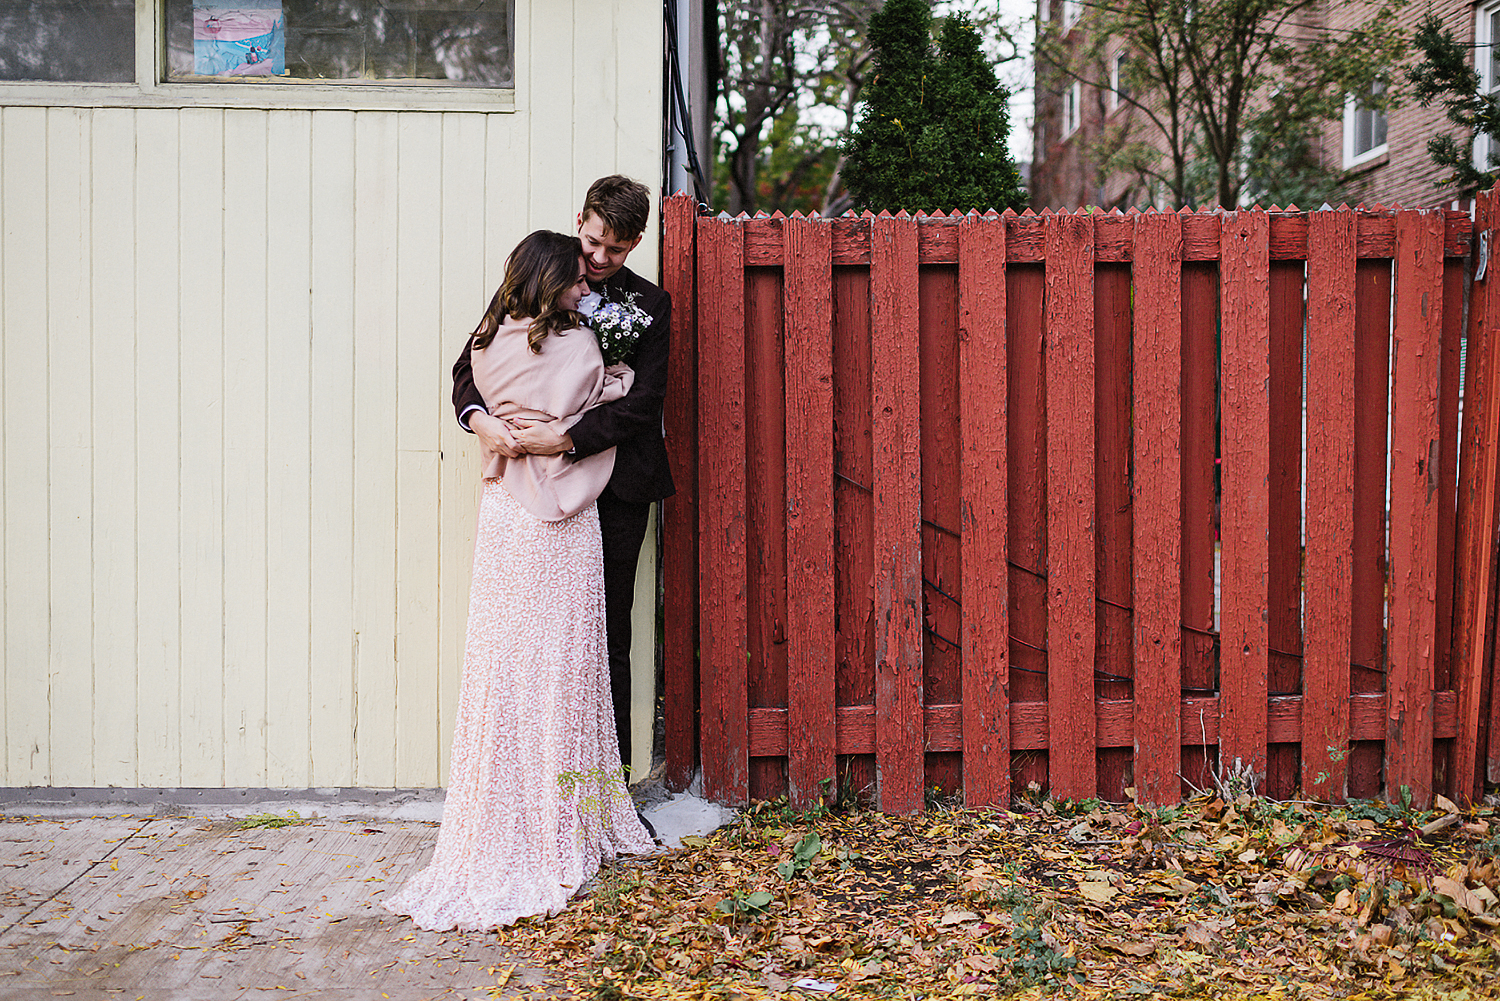 29-Best-Elopement-Photographers-Toronto-Fall-Wedding-Elopement-Modern-Vintage-Hipster-Bride-and-Groom-Sunset-Queen-Street-West.JPG